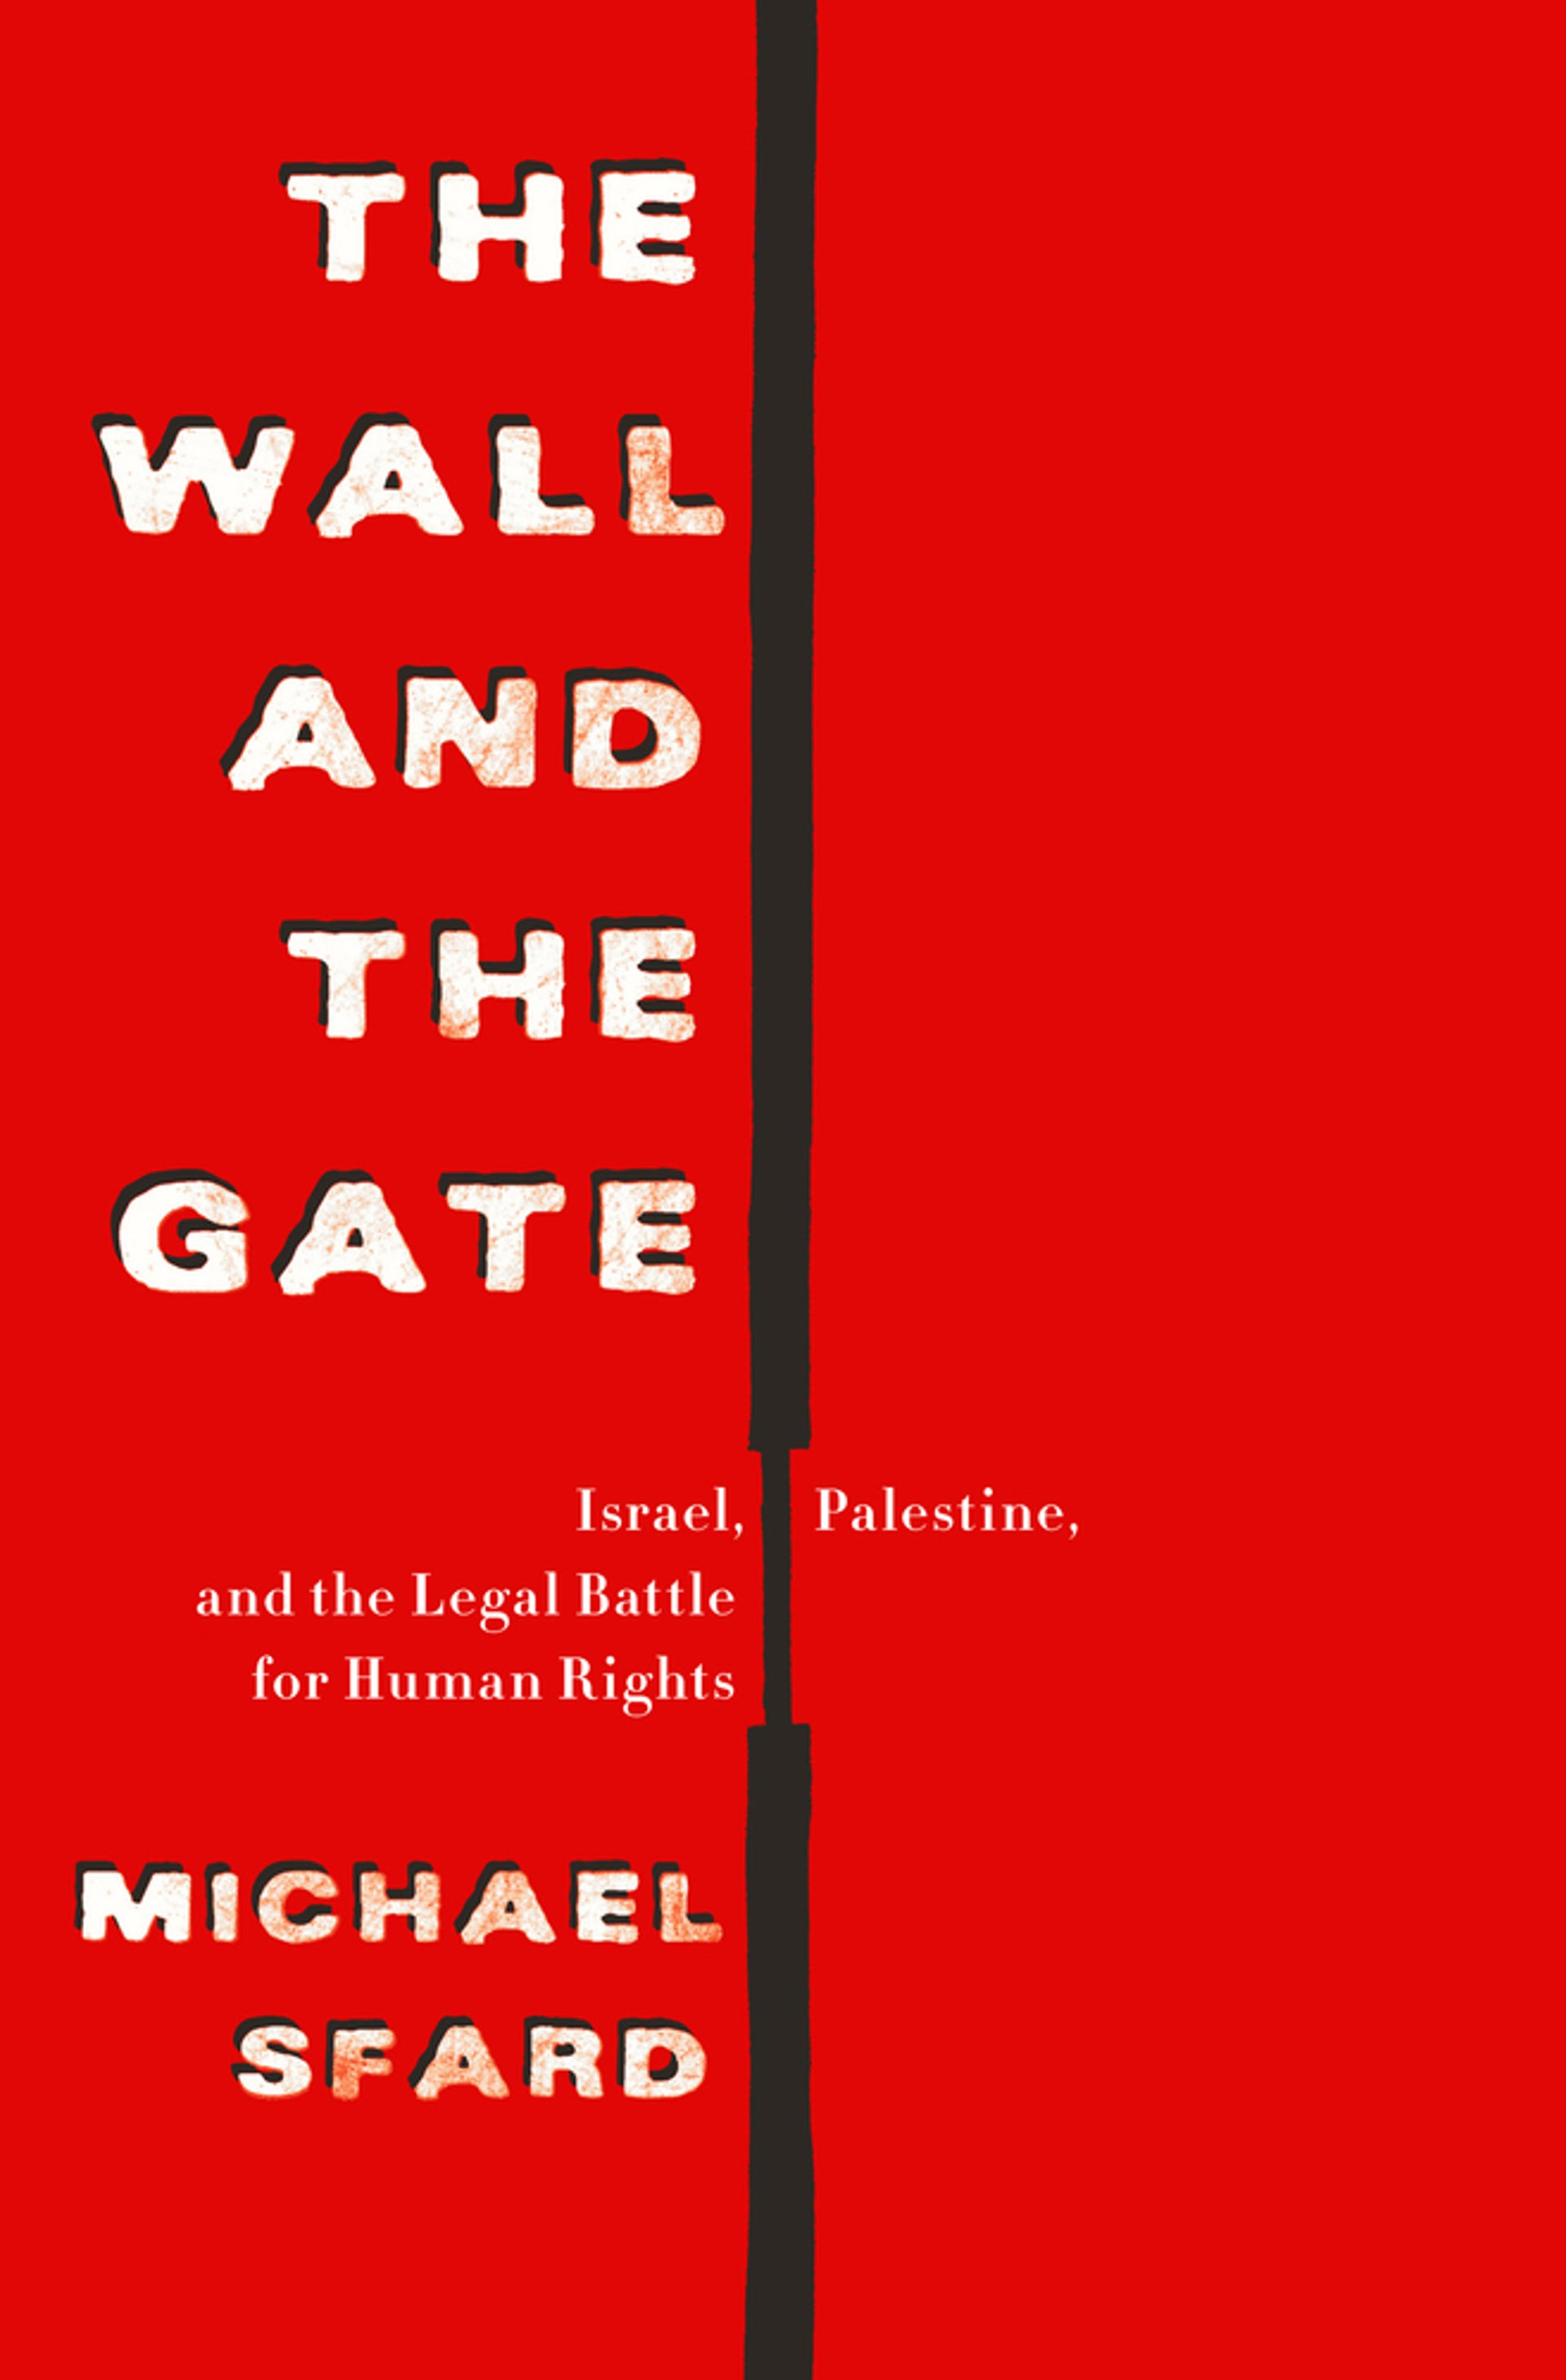 """The cover of Michael Sfard's book, """"The Wall and the Gate."""""""